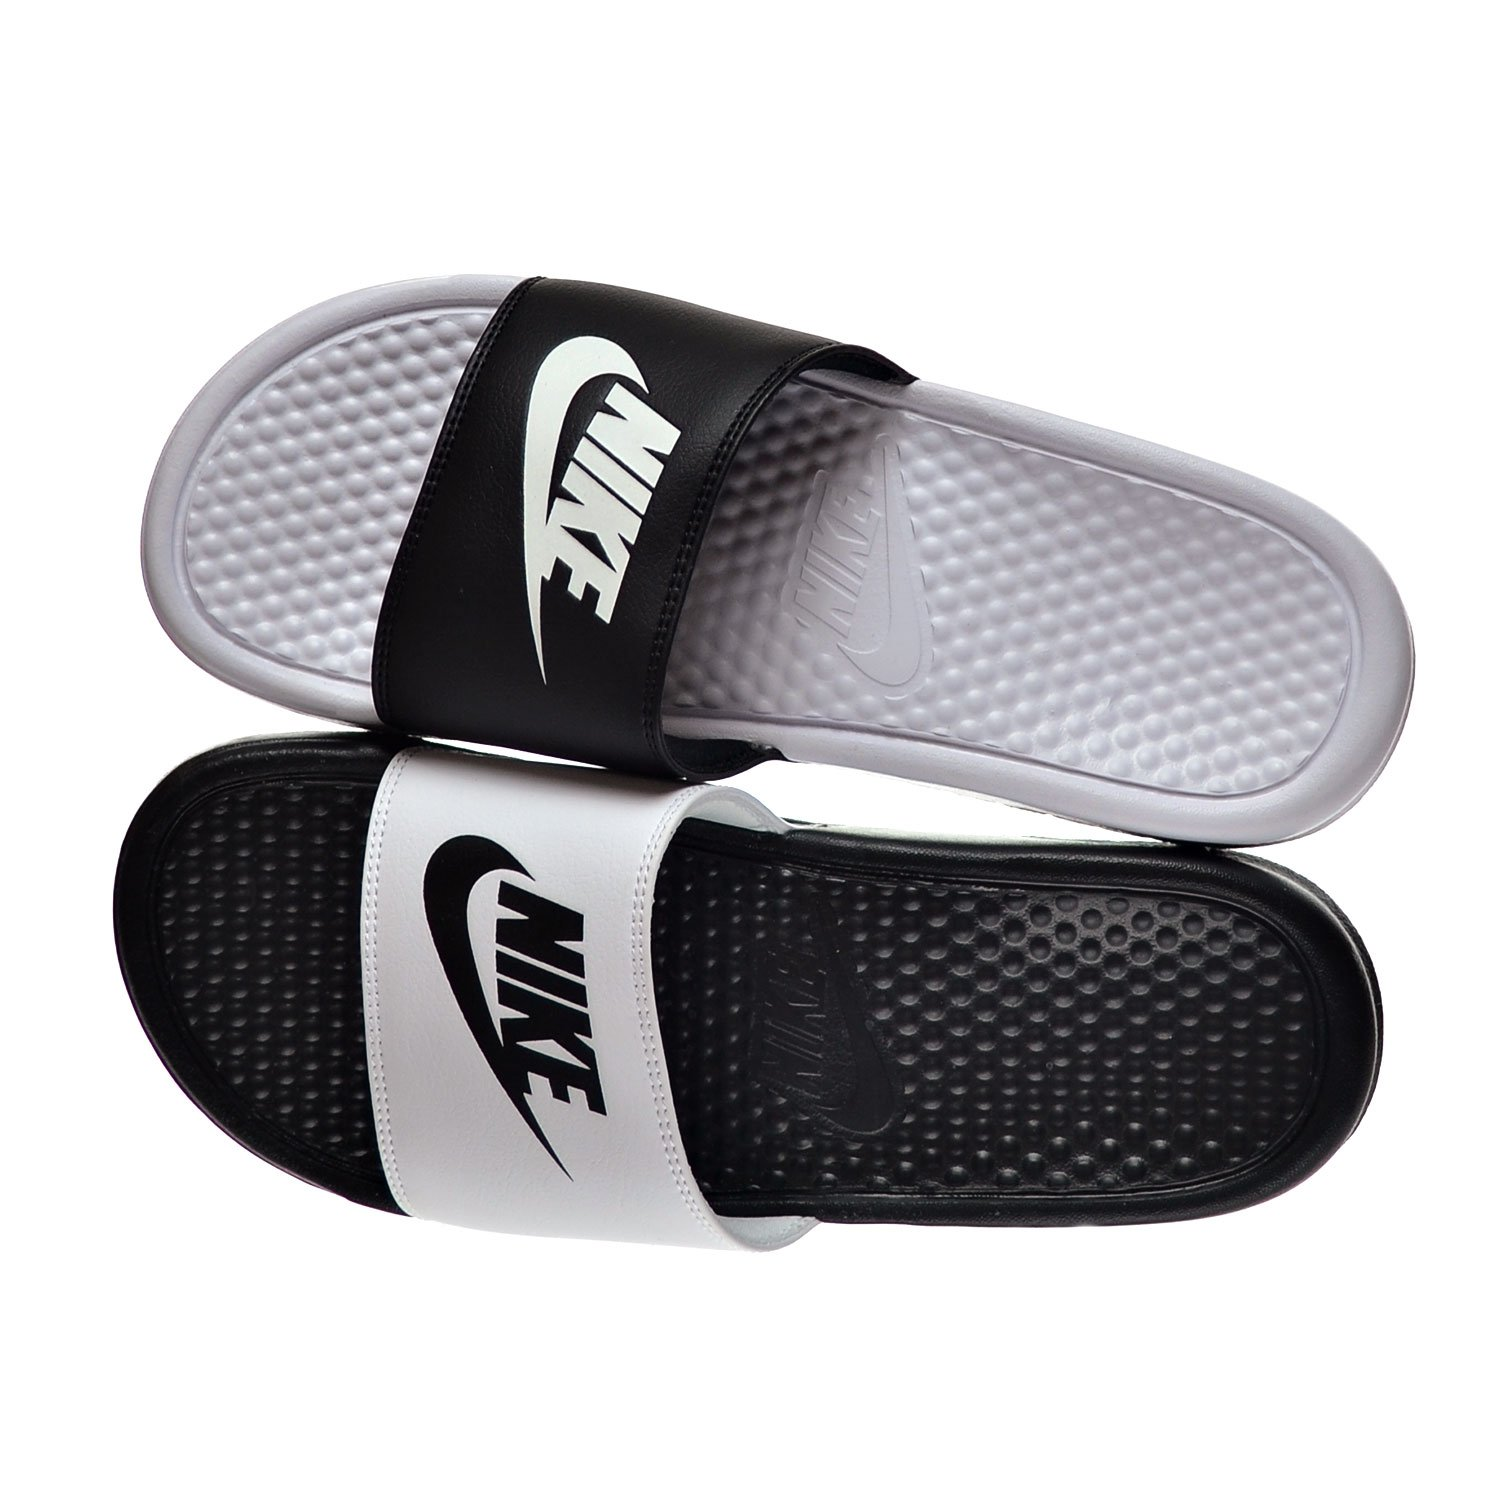 7e5eee56ff72 NIKE Benassi JDI Mismatch Men s Sandals Black White 818736-011 (10 D(M)  US)  Amazon.co.uk  Shoes   Bags